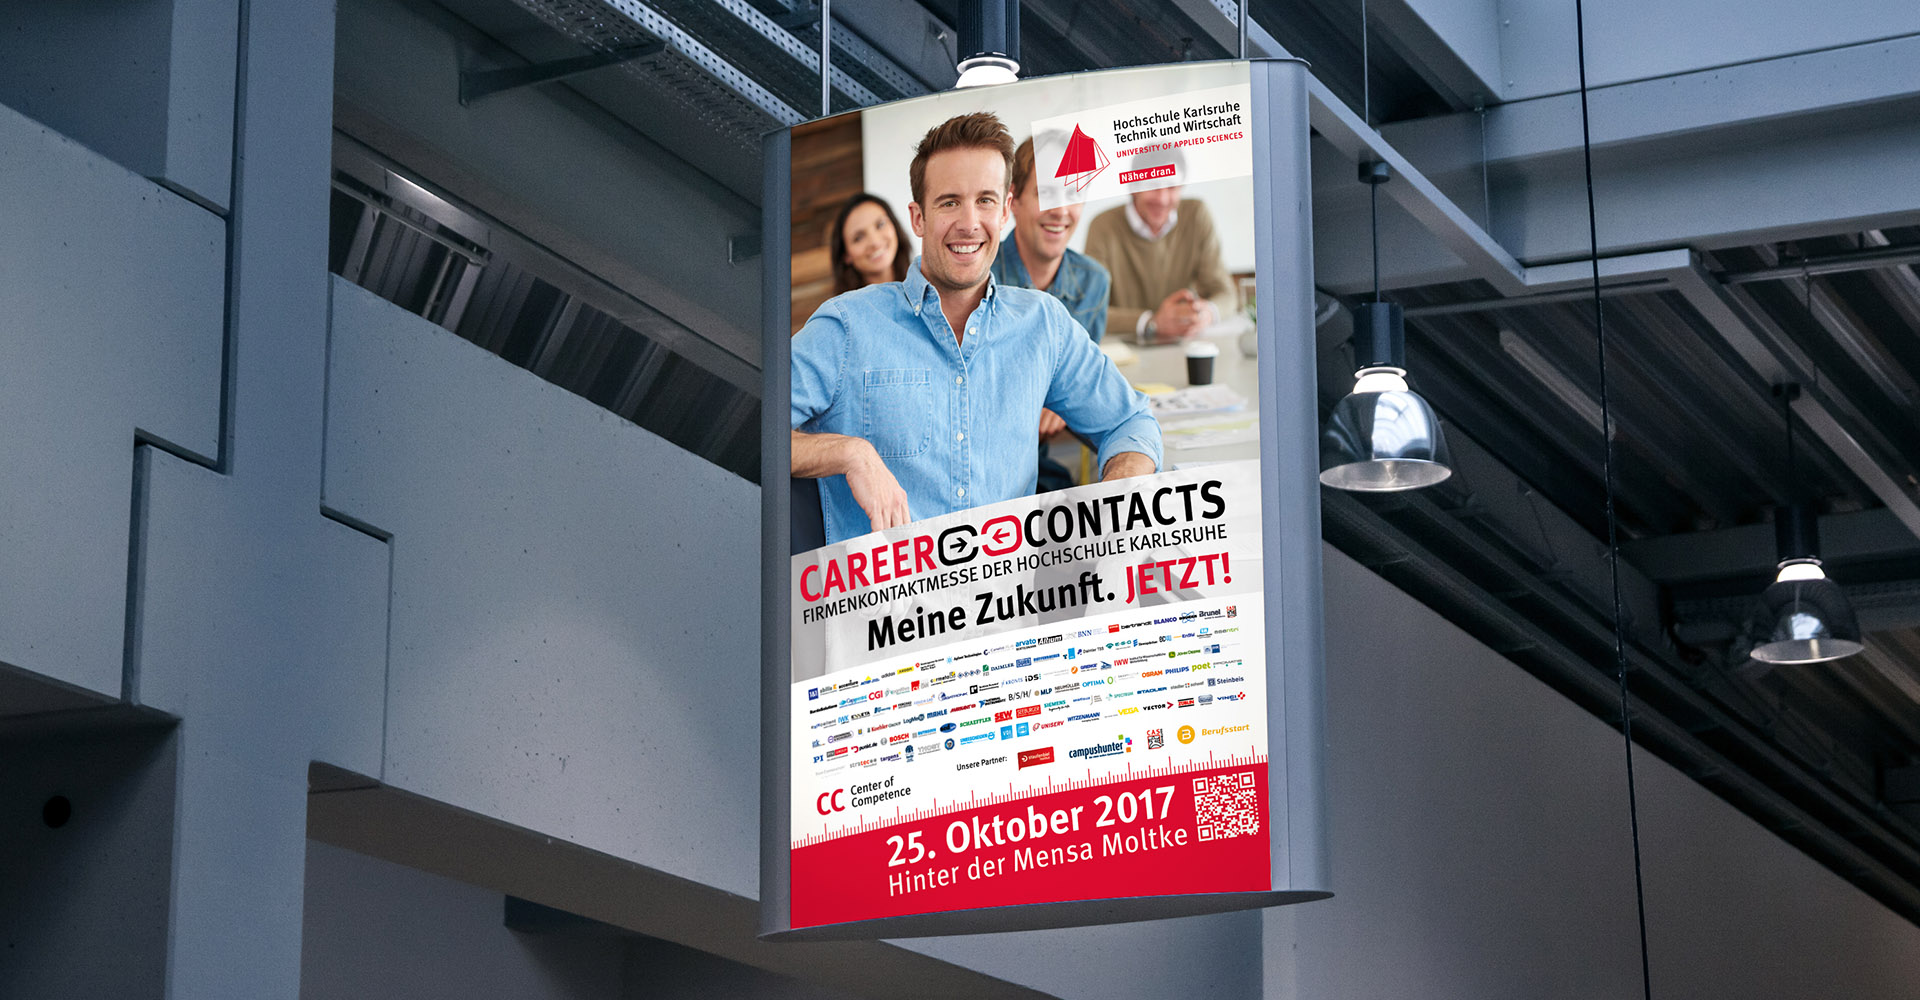 Plakat Hochschule Karlsruhe - careercontacts